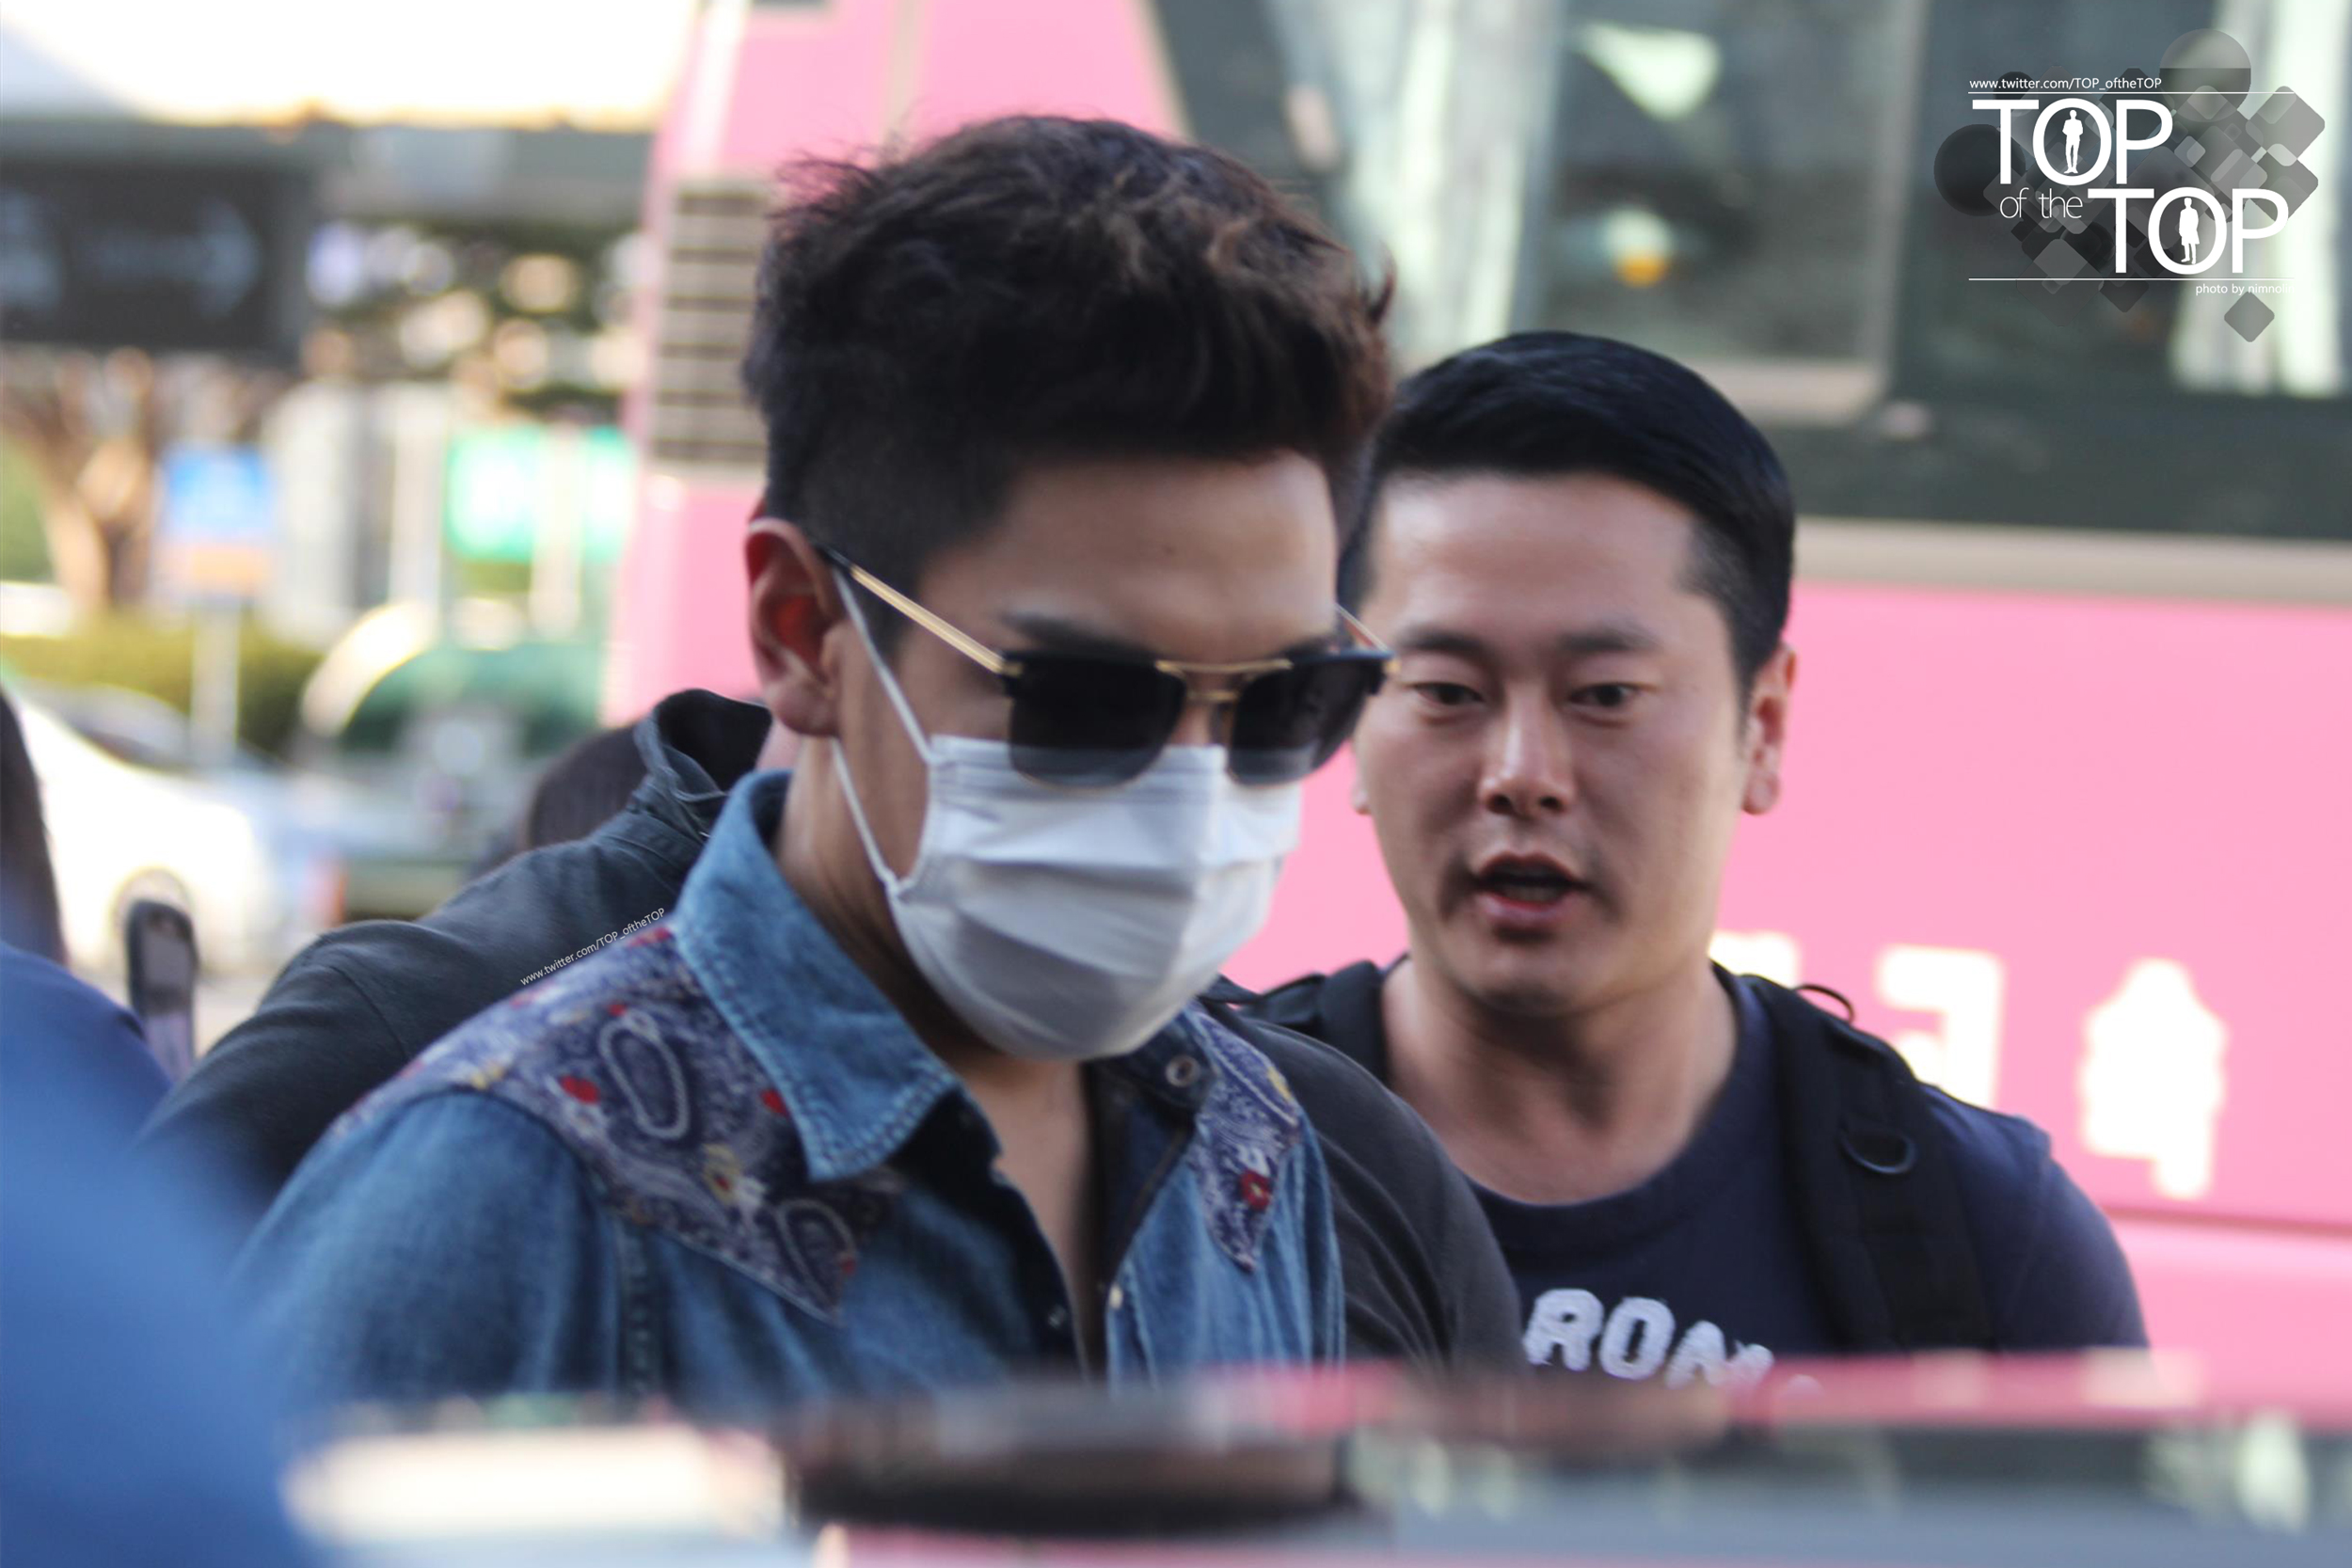 TOP Gimpo Airport 2015-05-20 by top_ofthetop (1).jpg